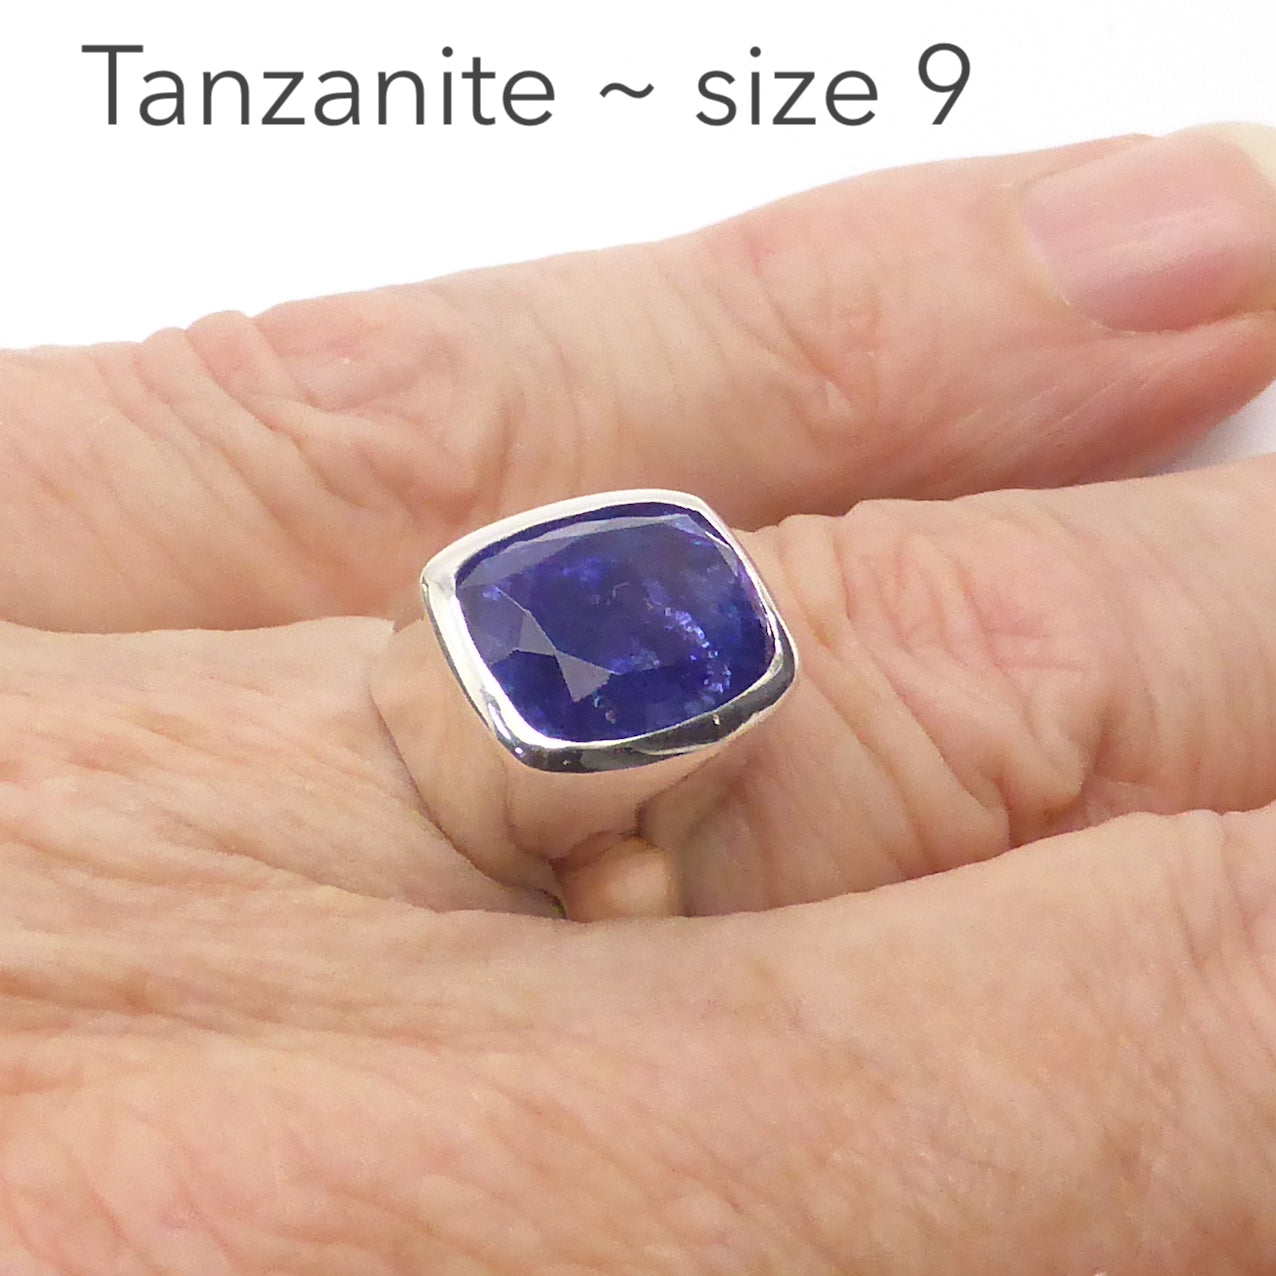 Large Genuine Tanzanite Ring | 8 Carat | Faceted Oblong | 925 sterling Silver | Size 9 | Lovely Blue Violet Fire | Some inclusions | Mt Kilimanjaro | Crystal Heart Australia since 1986